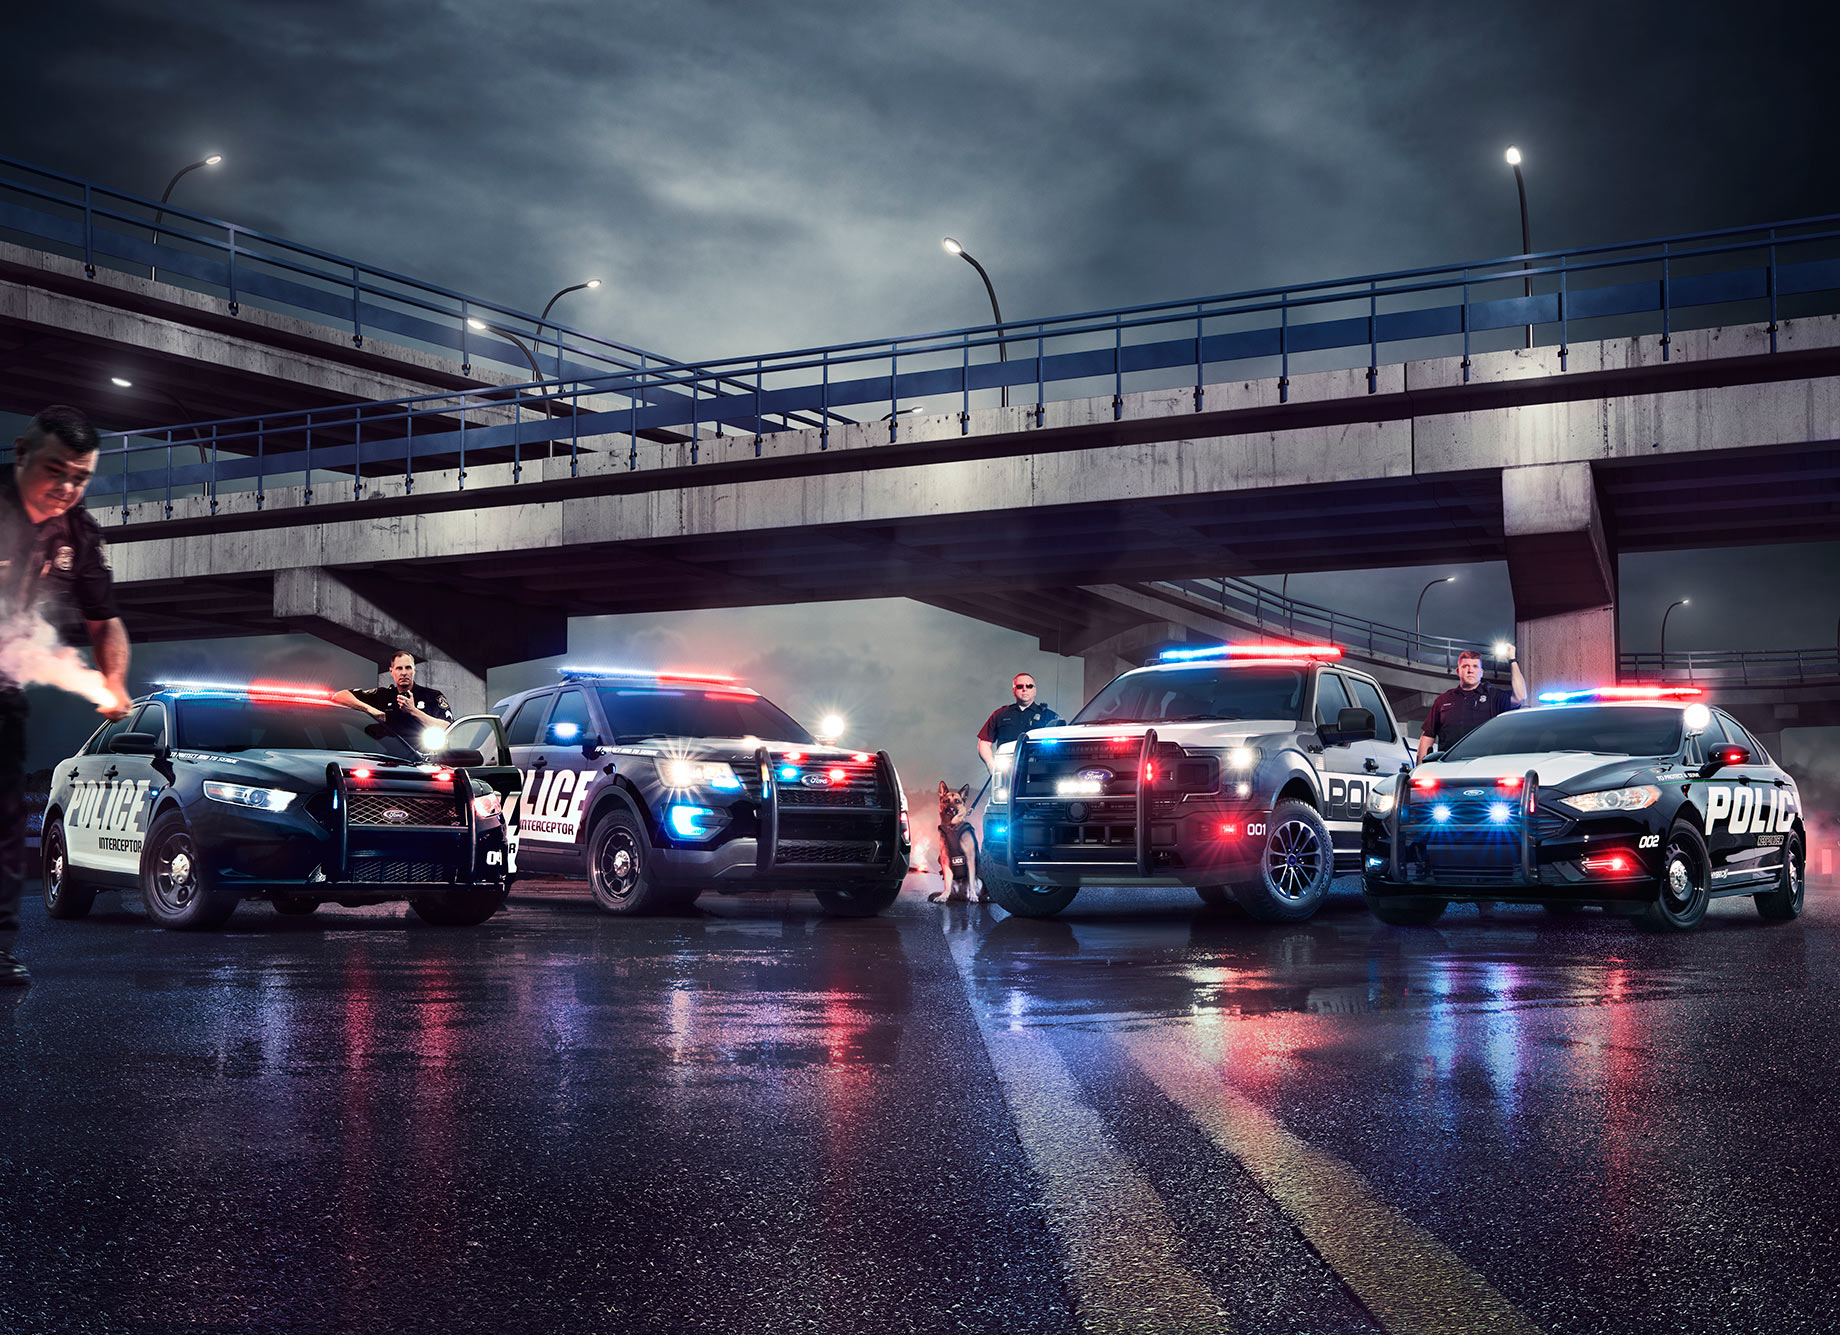 _18_FRD_XBD_400027_Police_Interceptors_Responders_FINAL_WEB